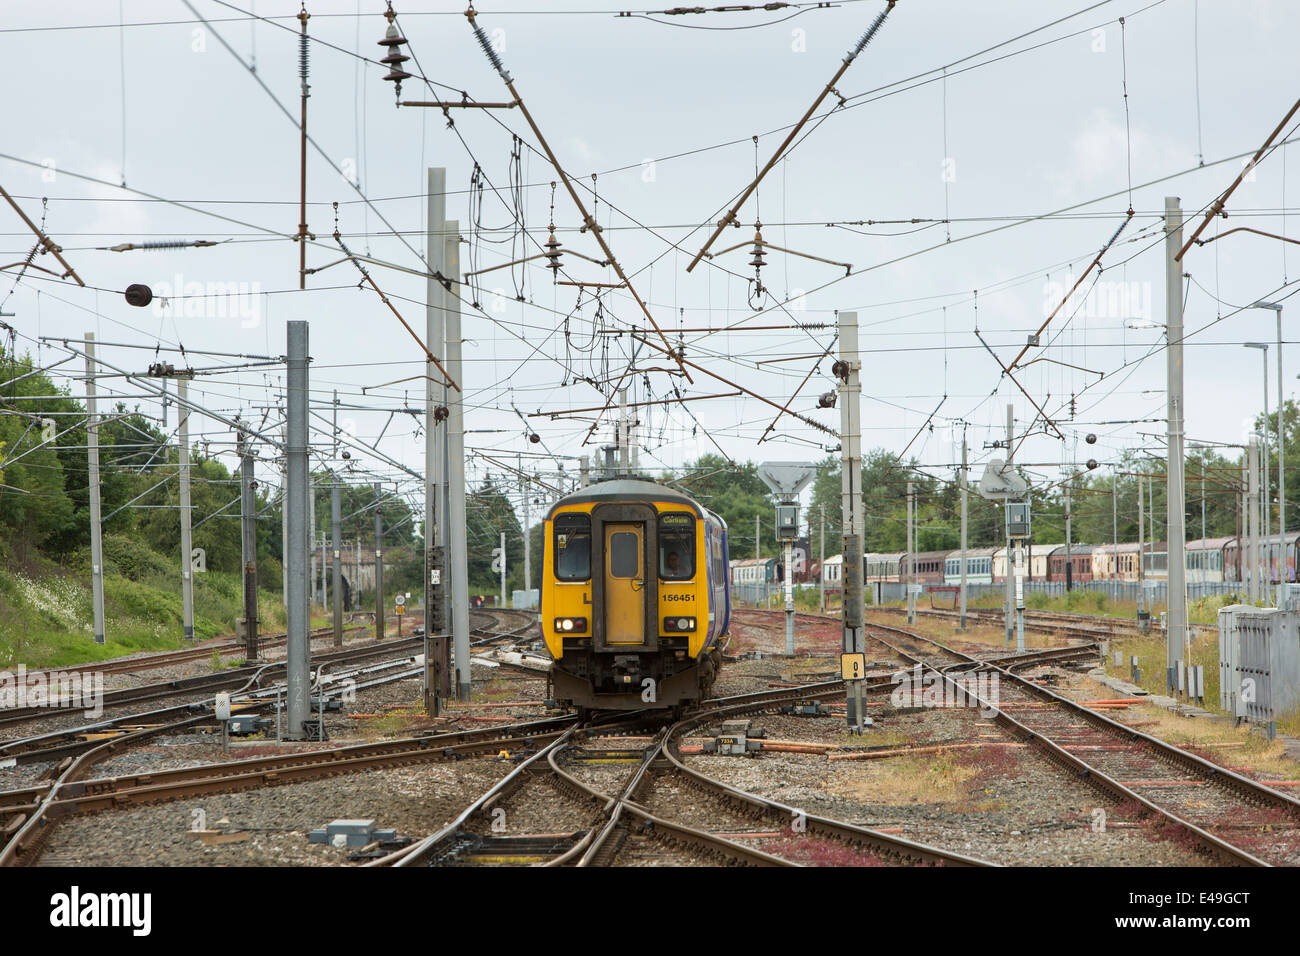 Diesel Multiple Unit (DMU) Class 156 operated by Northern Rail approaching Carnforth Station, Lancashire - Stock Image